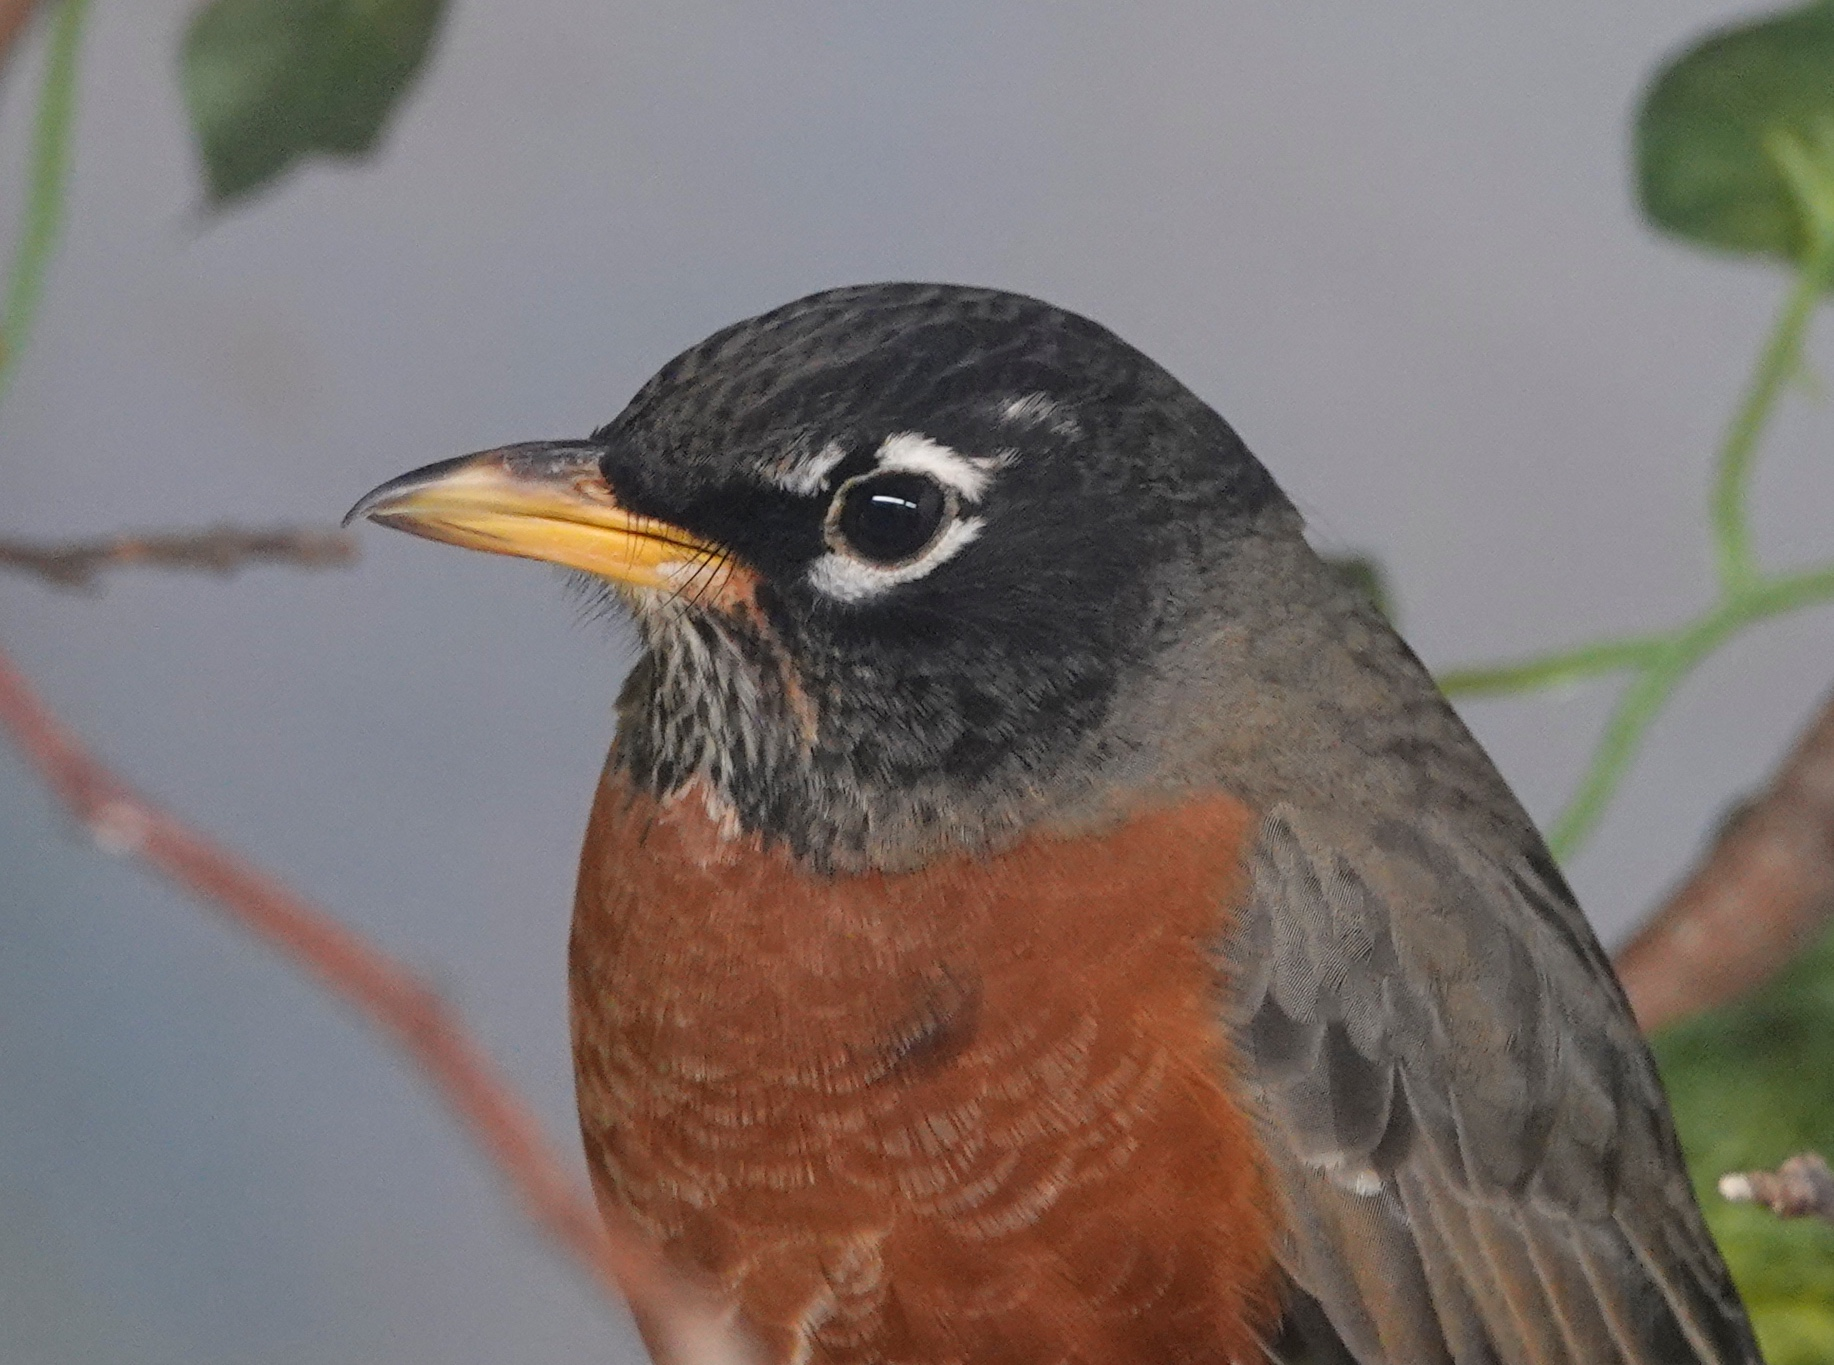 The American Robin is a handsome bird.